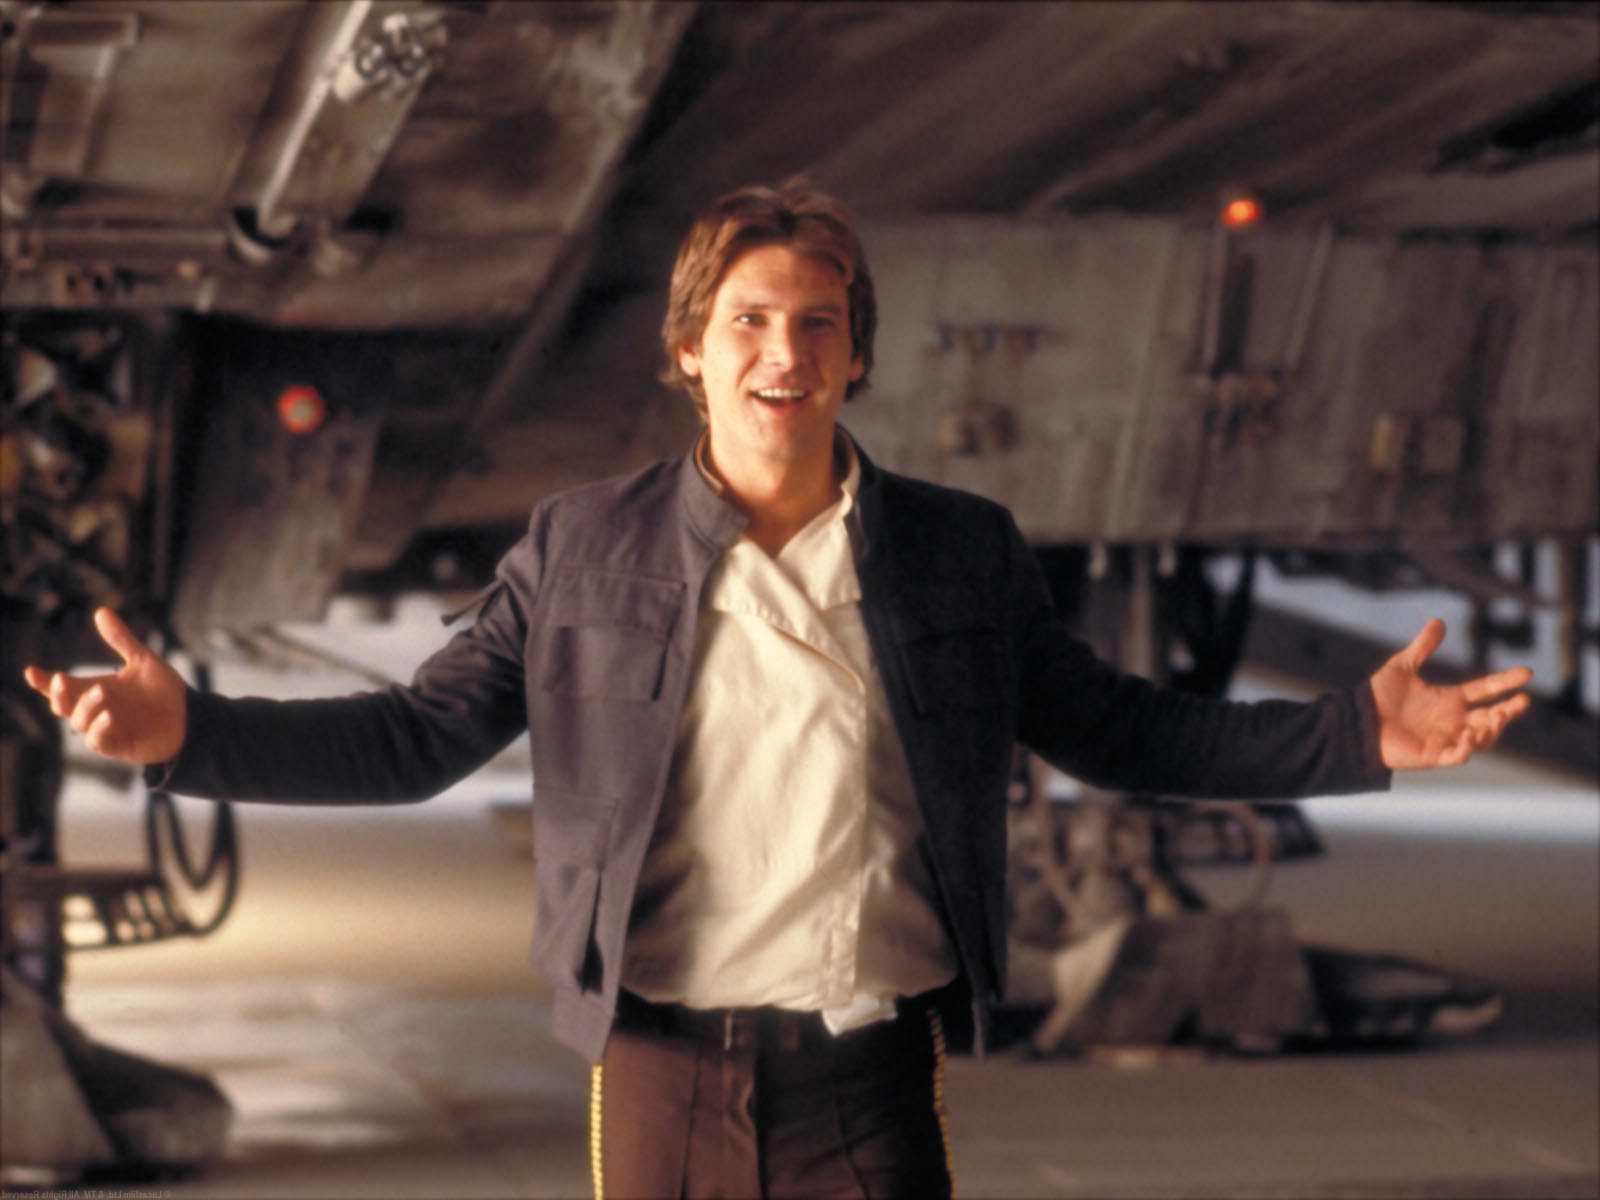 Harrison Ford Wallpaper 16   1600 X 1200 stmednet 1600x1200